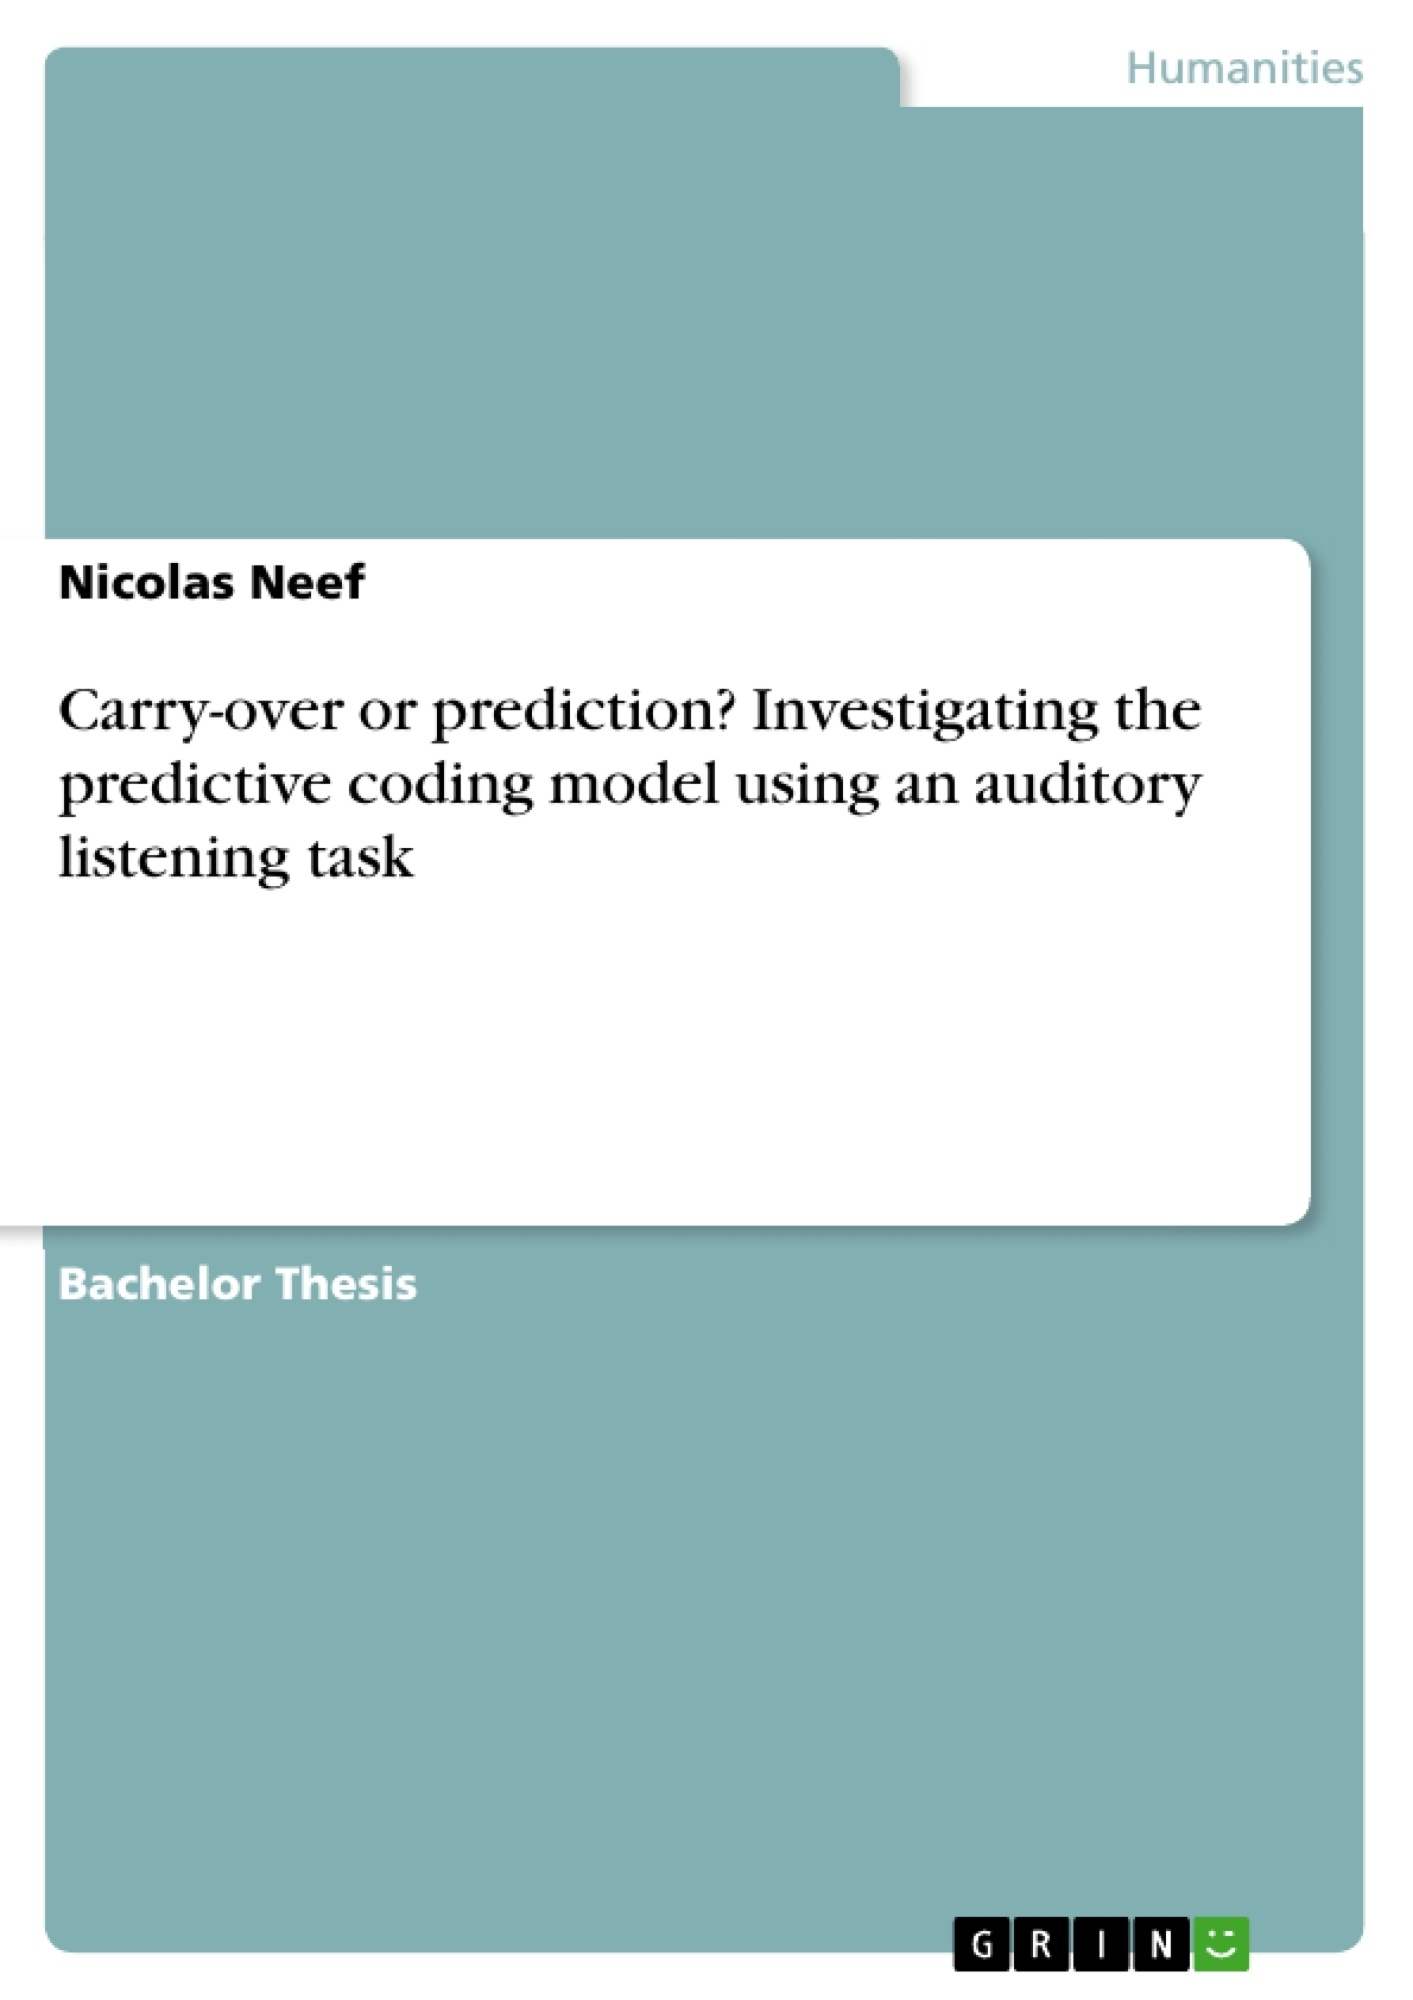 Title: Carry-over or prediction? Investigating the predictive coding model using an auditory listening task